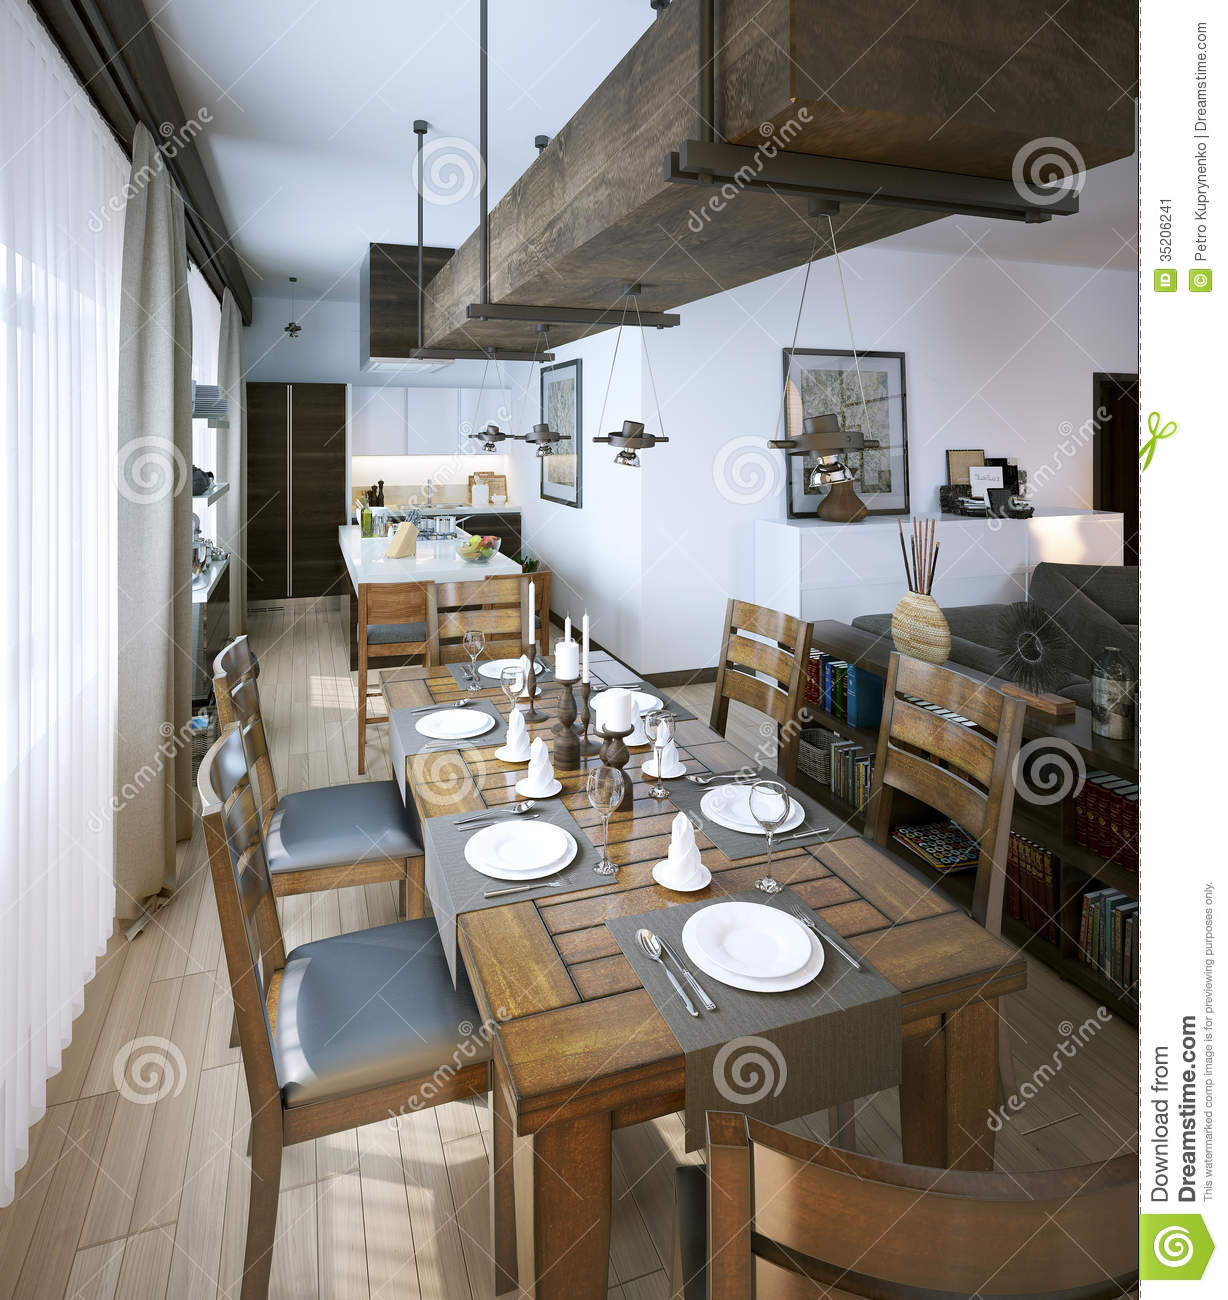 dining room modern style stock image - image: 35206241